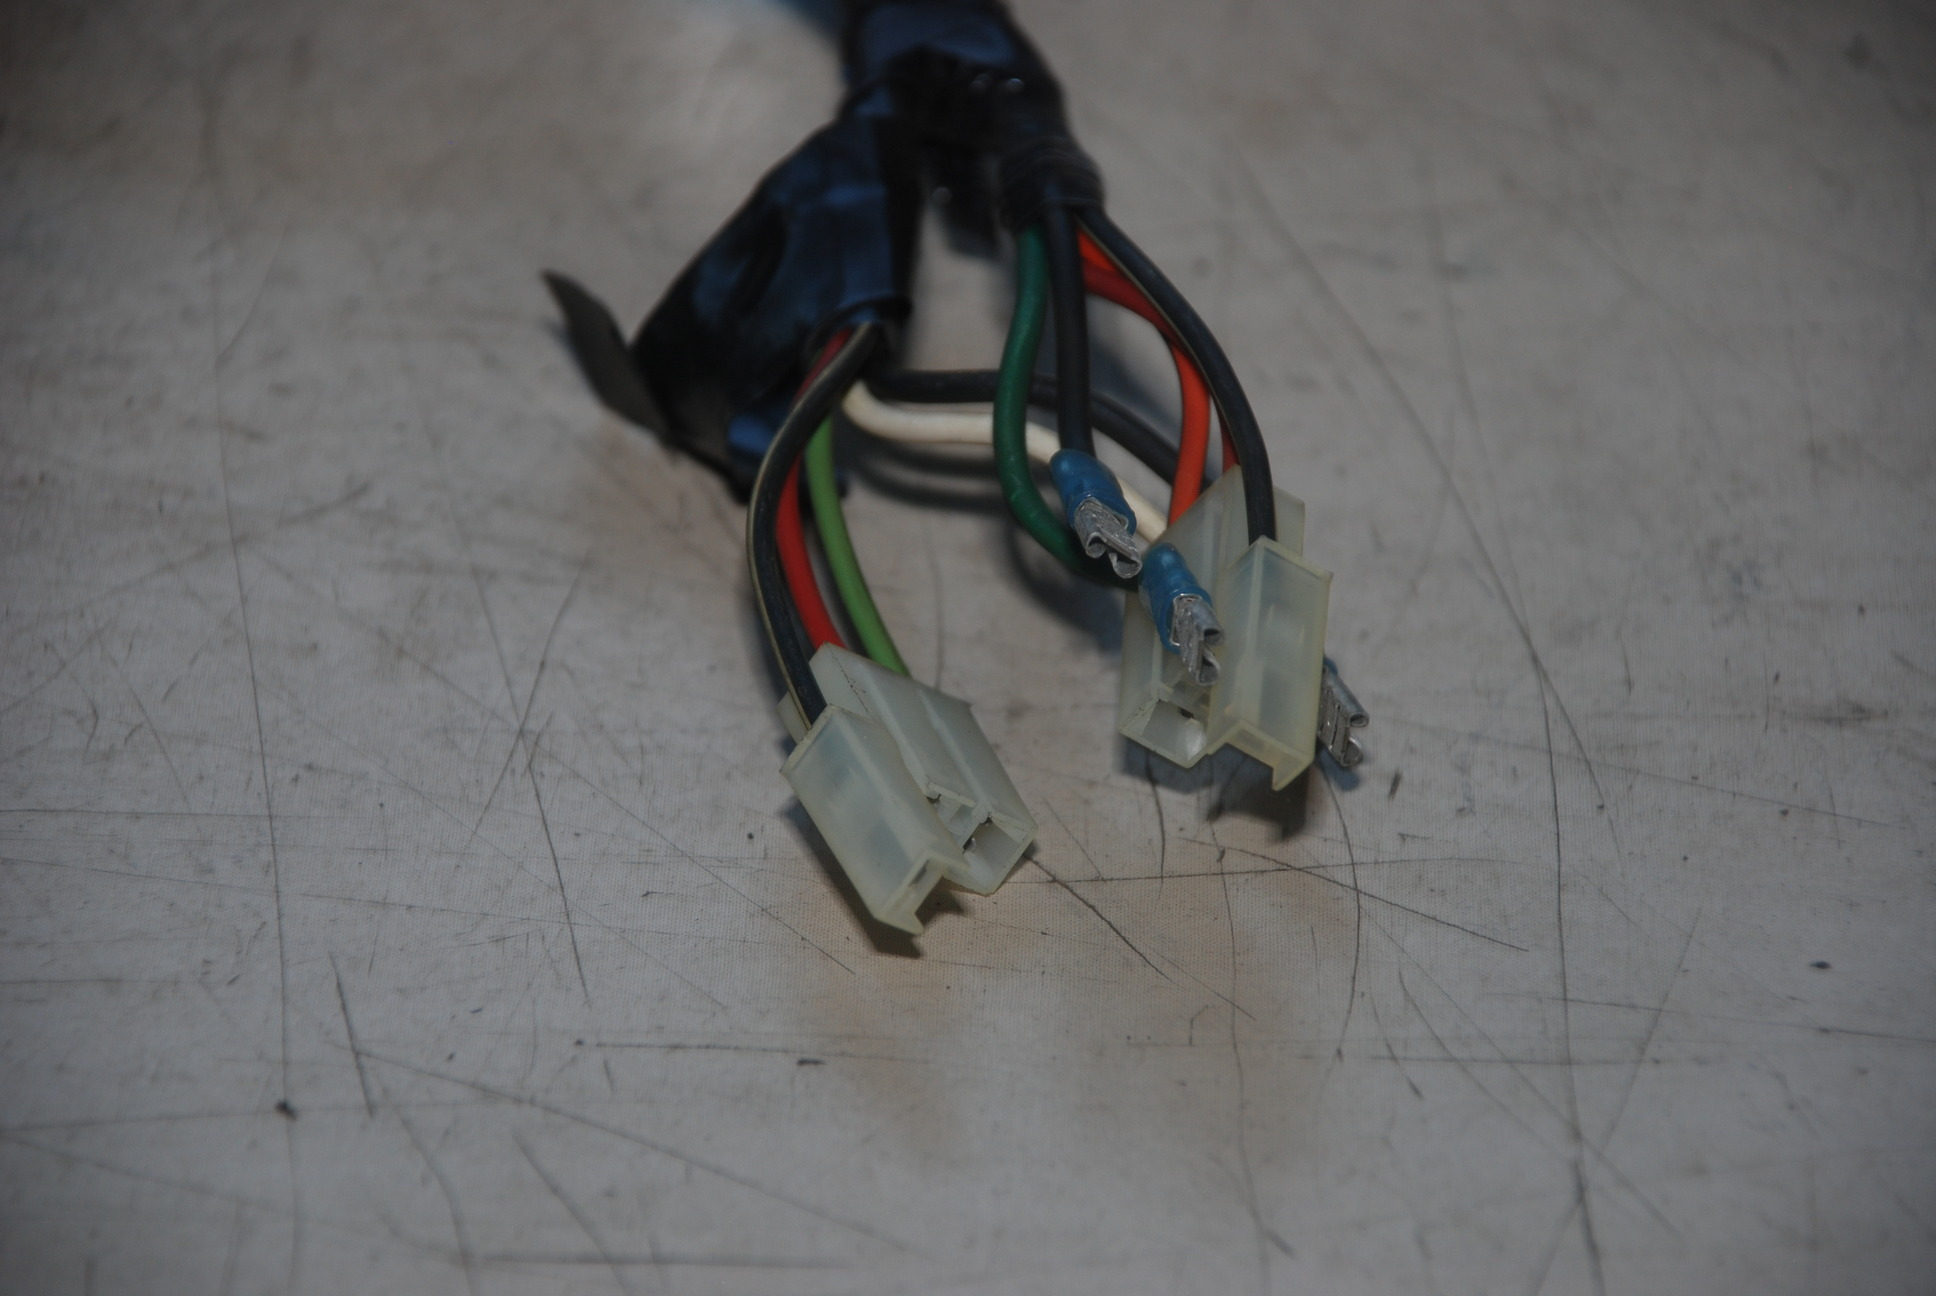 6073 0006 wiring harness manufacturers in chakan yondo tech wire harness manufacturers in chakan pune at readyjetset.co